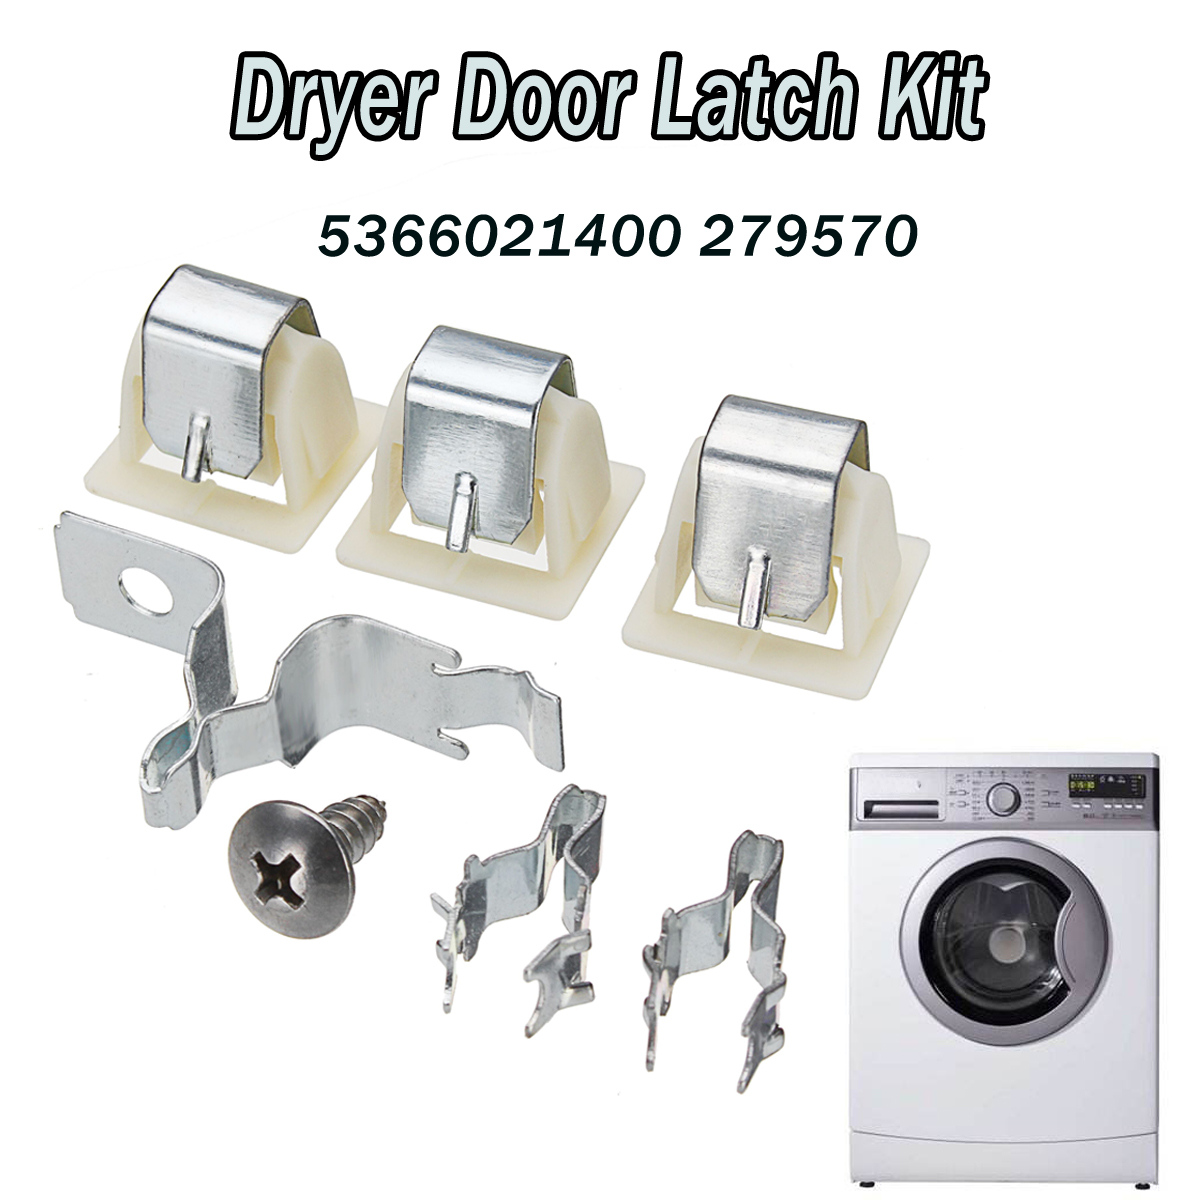 hight resolution of dryer door latch kit part for electrolux frigidaire kenmore 5366021400 279570 in clothes dryer parts from home appliances on aliexpress com alibaba group